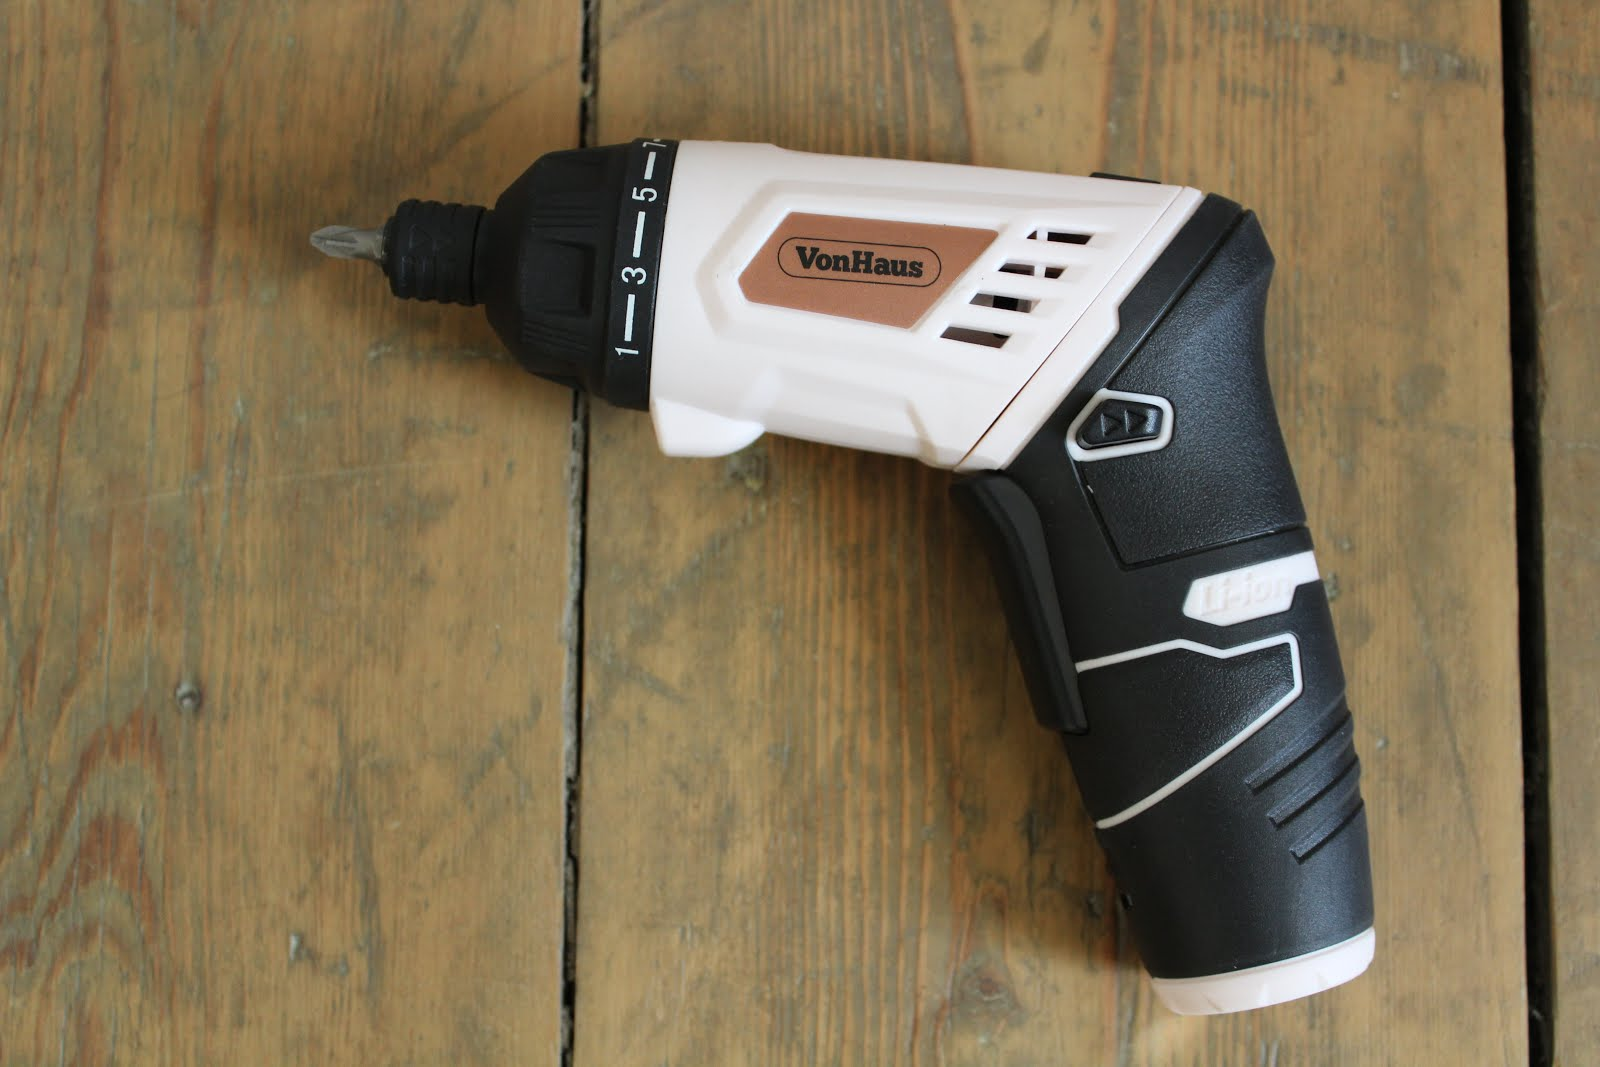 VonHaus Screwdriver Review